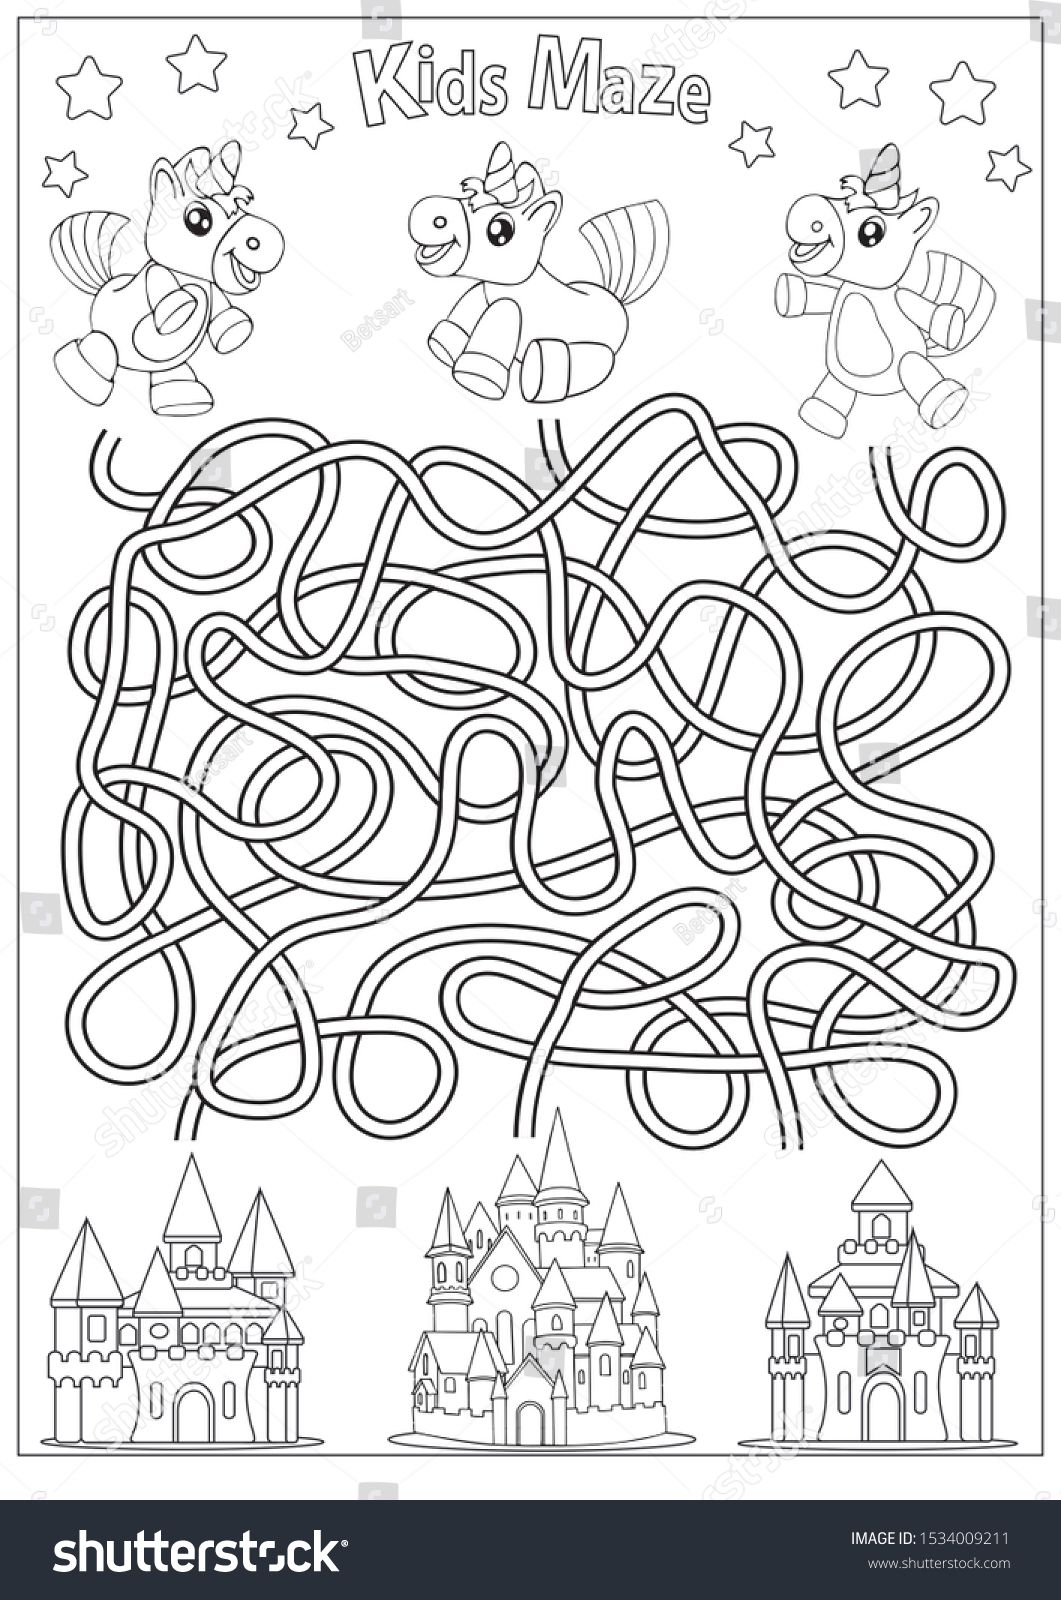 Kids Maze Coloring Page Children Labyrinth Kids Game With Cute Unicorns Activity Page Find The Right Path Funny Riddle Mazes For Kids Coloring Pages Kids